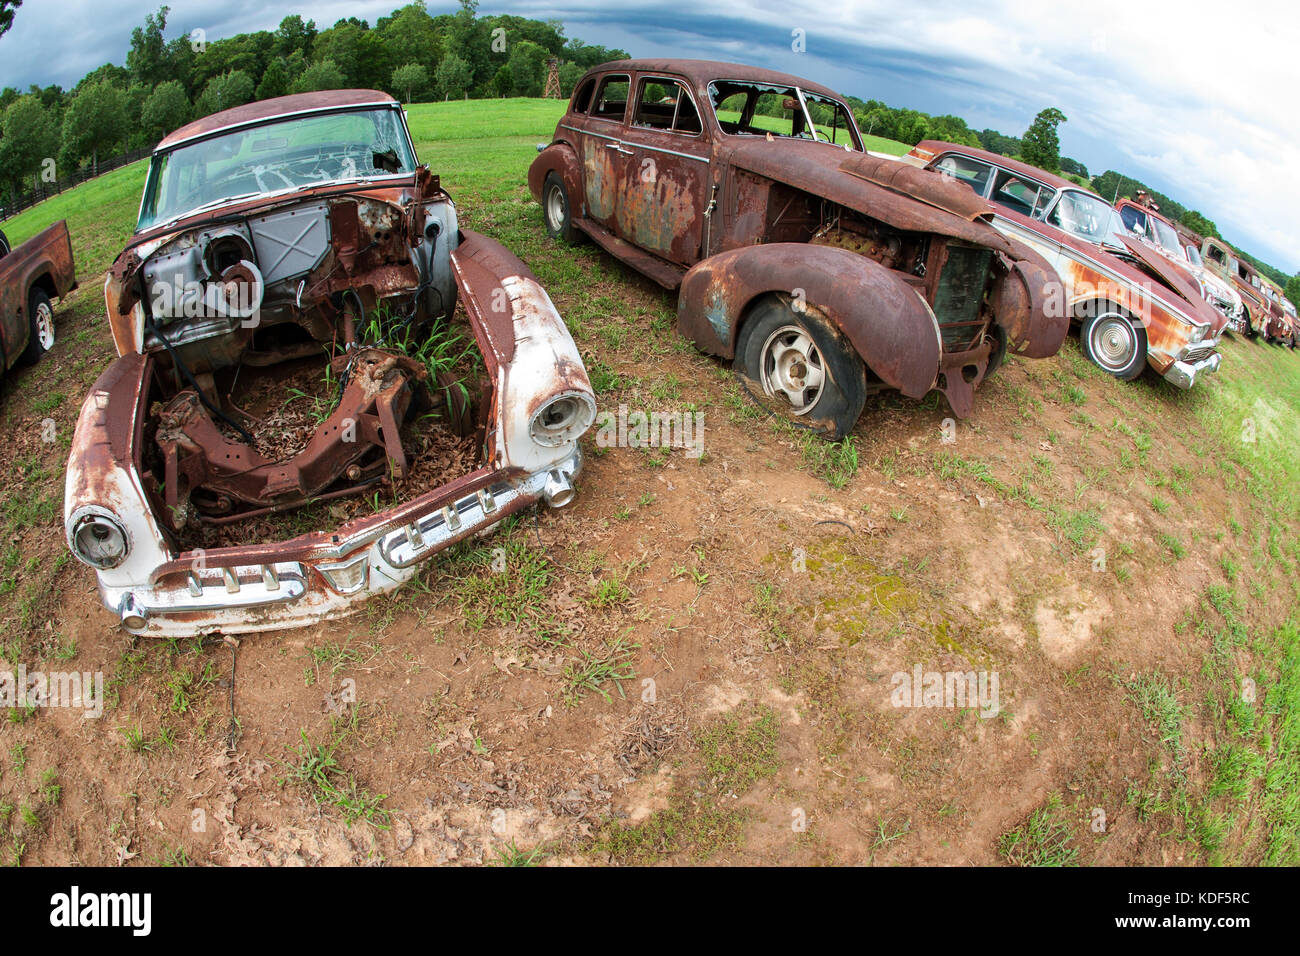 Old Auto Parts Stock Photos & Old Auto Parts Stock Images - Alamy